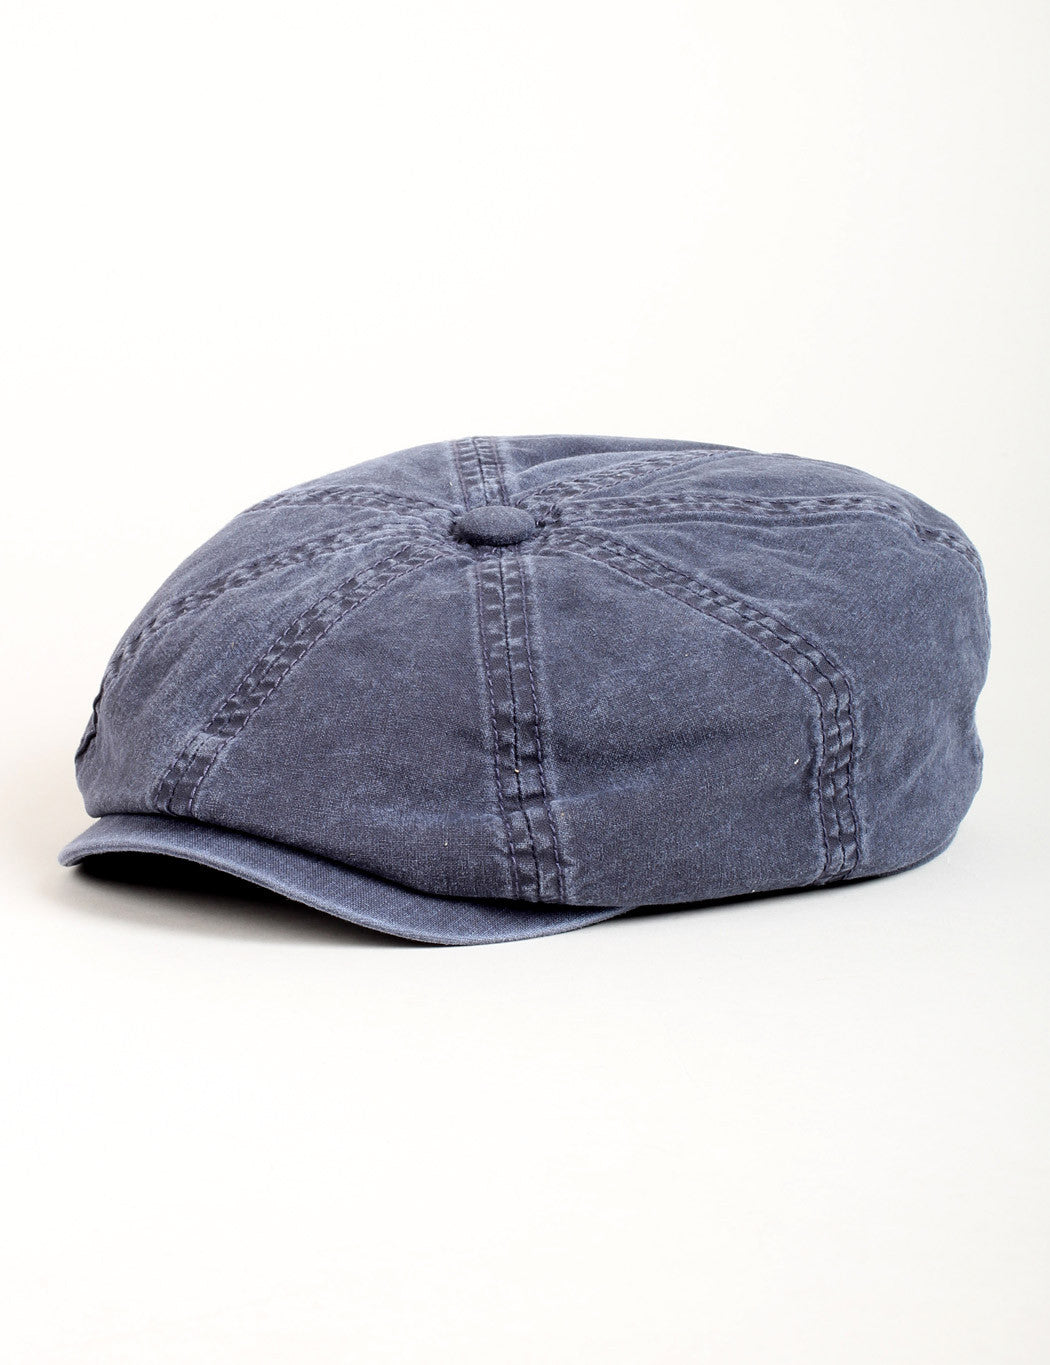 Stetson Hatteras Cotton Newsboy Cap - Washed Navy